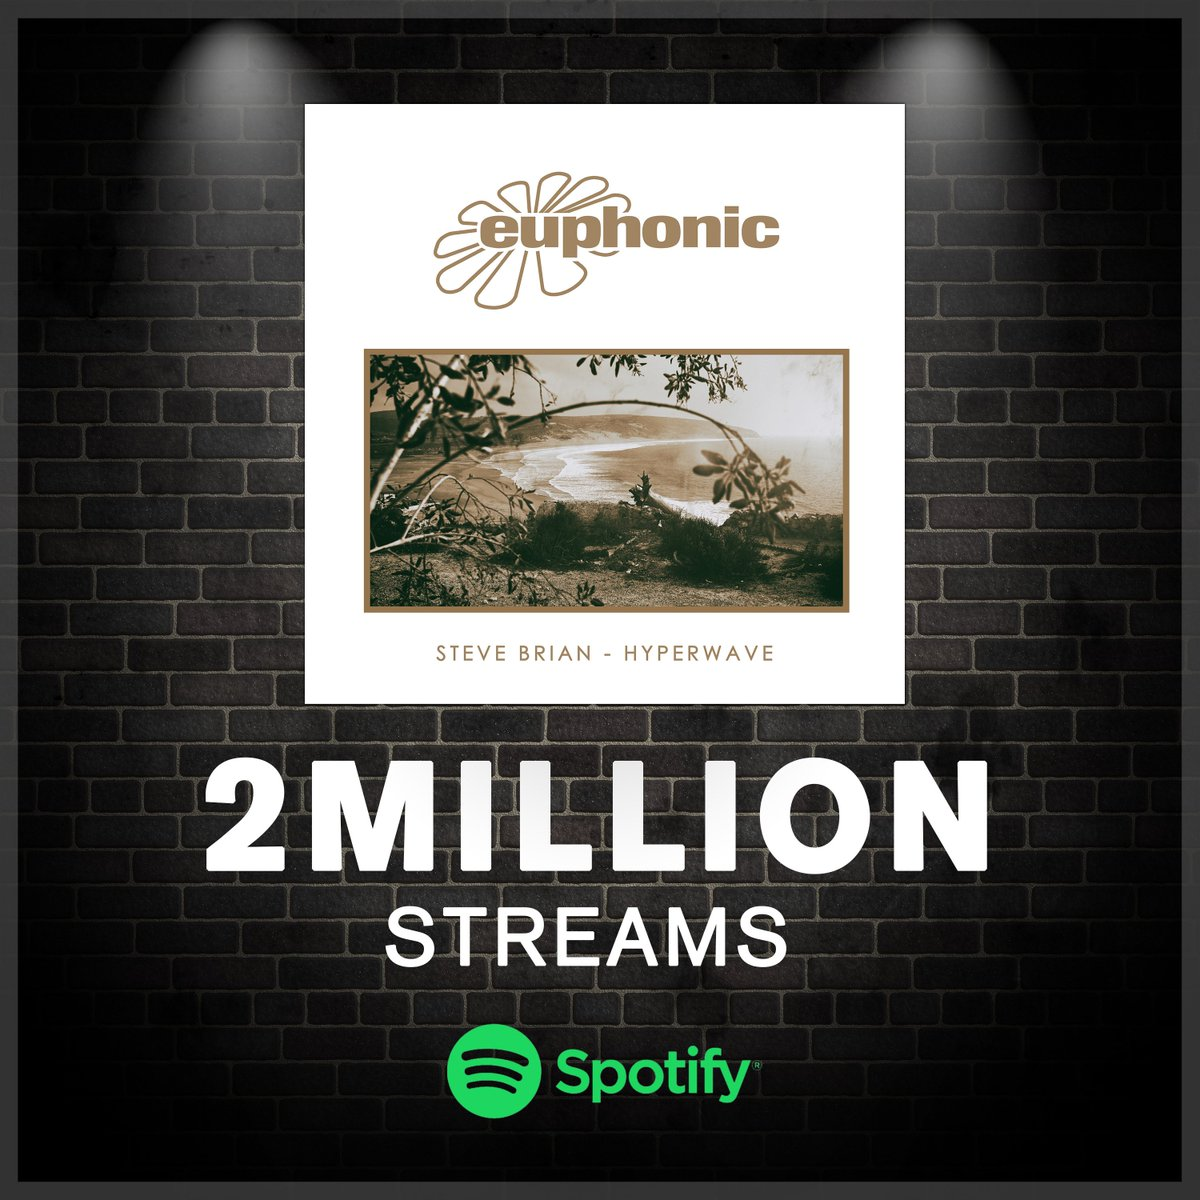 2 Million streams on #Spotify for 'Hyperwave' 🌊Congrats @SteveBrianMusic! 😍 http://EUPHONIC.LNK.TO/EUPH253